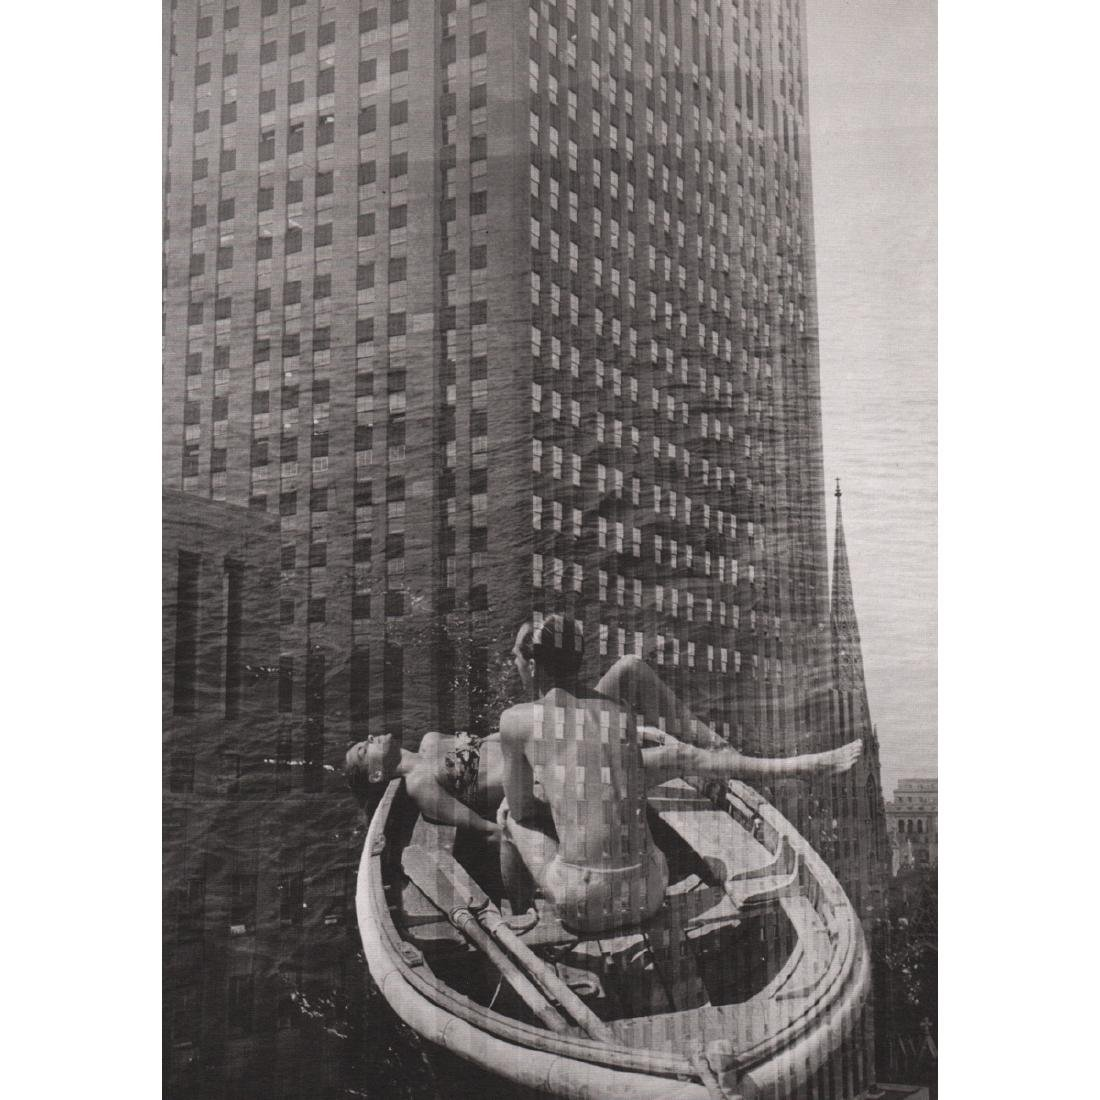 MAURICE TABARD - New York in my Boat, 1948